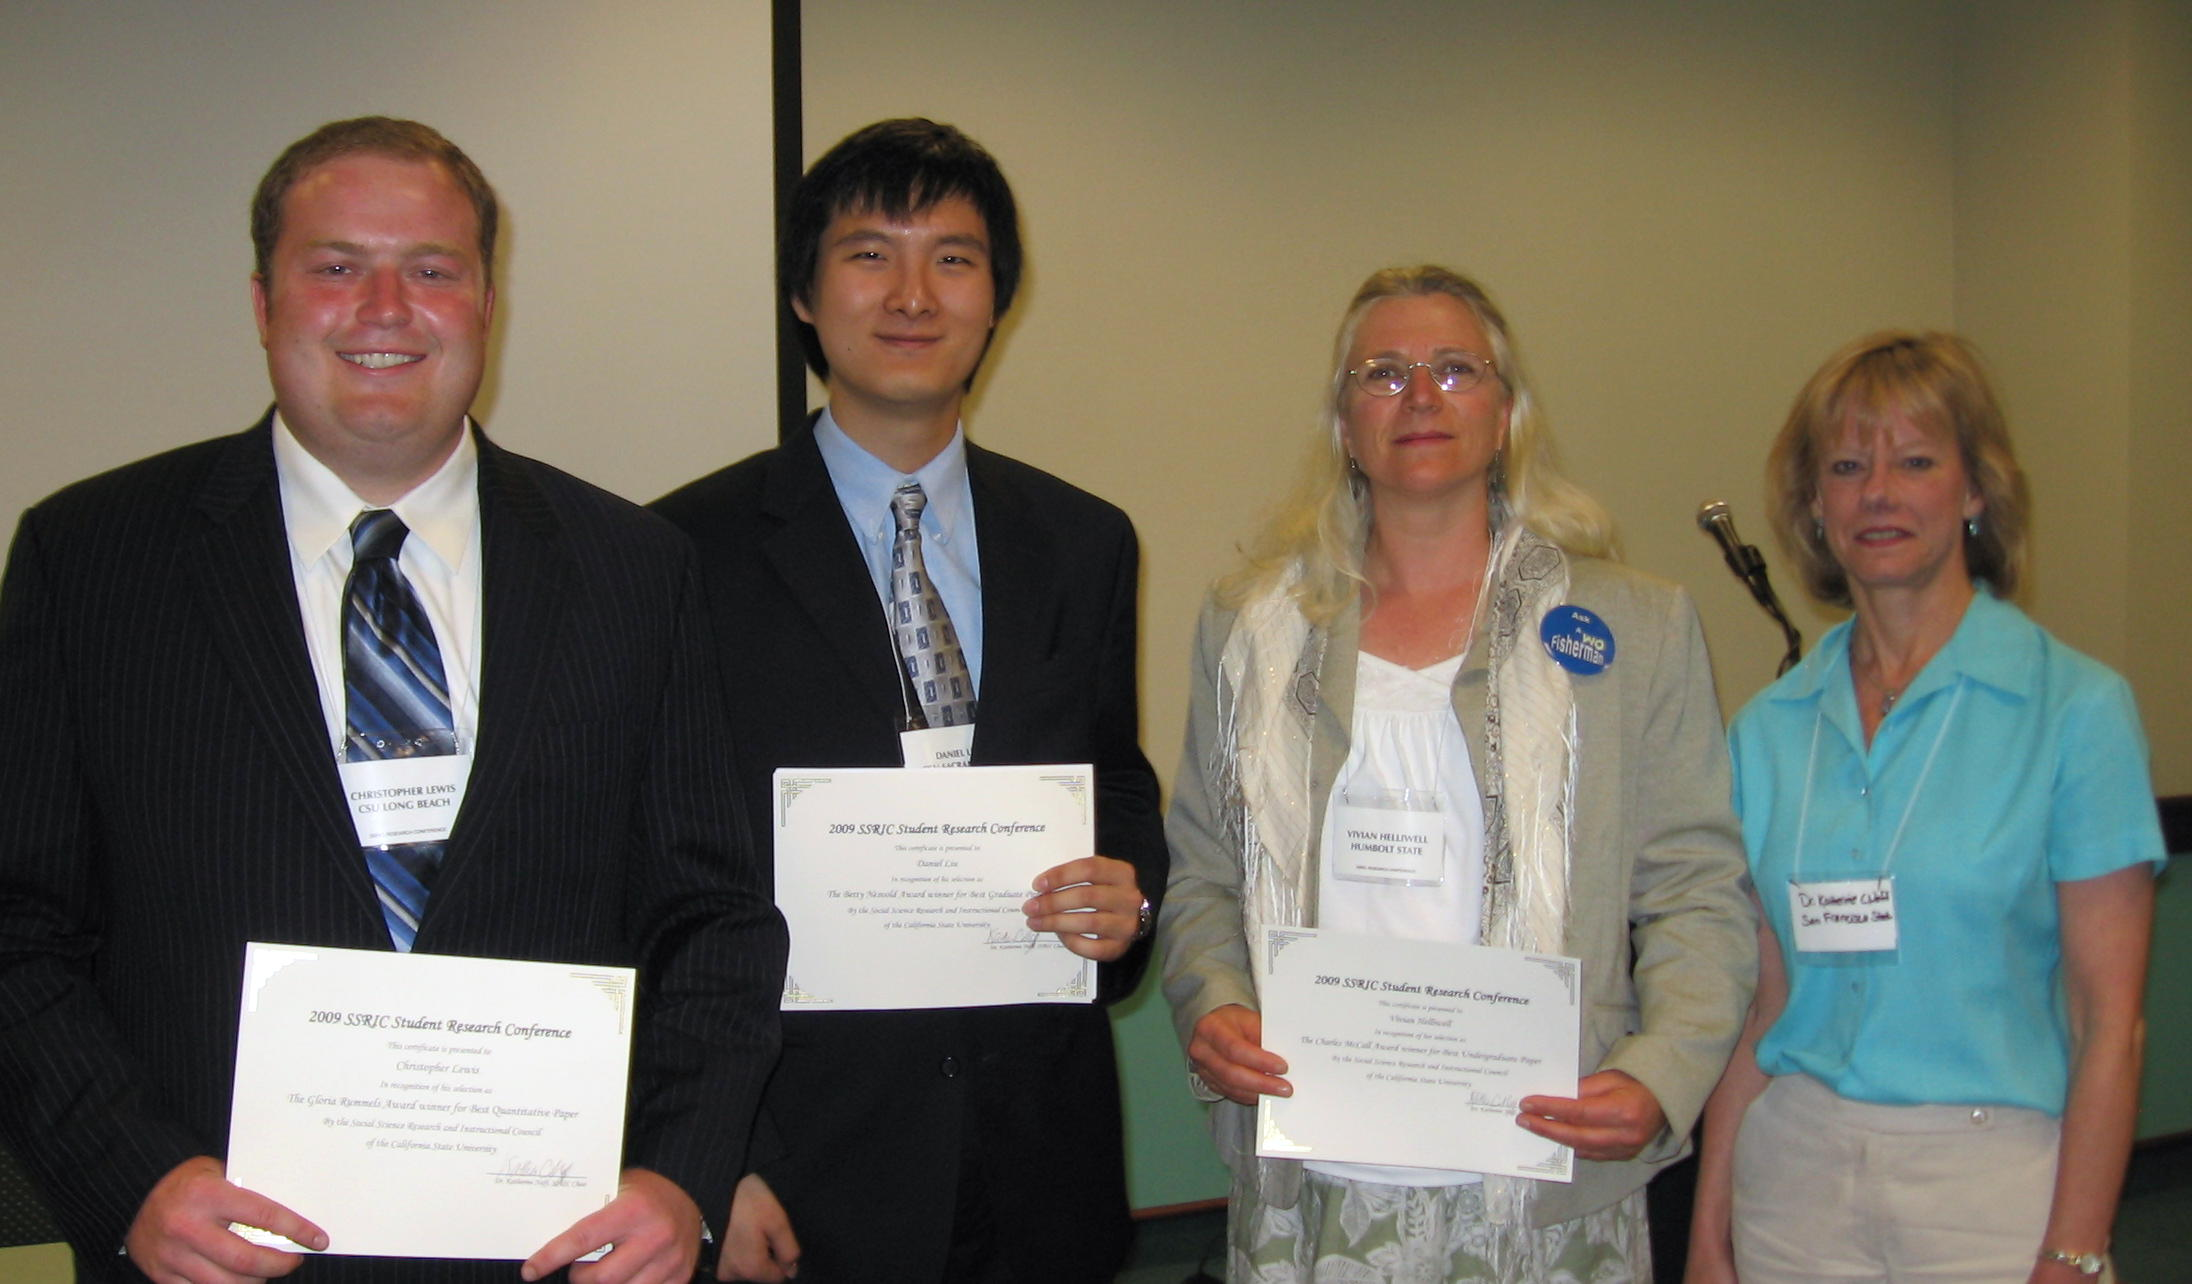 2009 Best Paper Award Winners, shown with SSRIC Chair Dr. Kathy Naff (right)